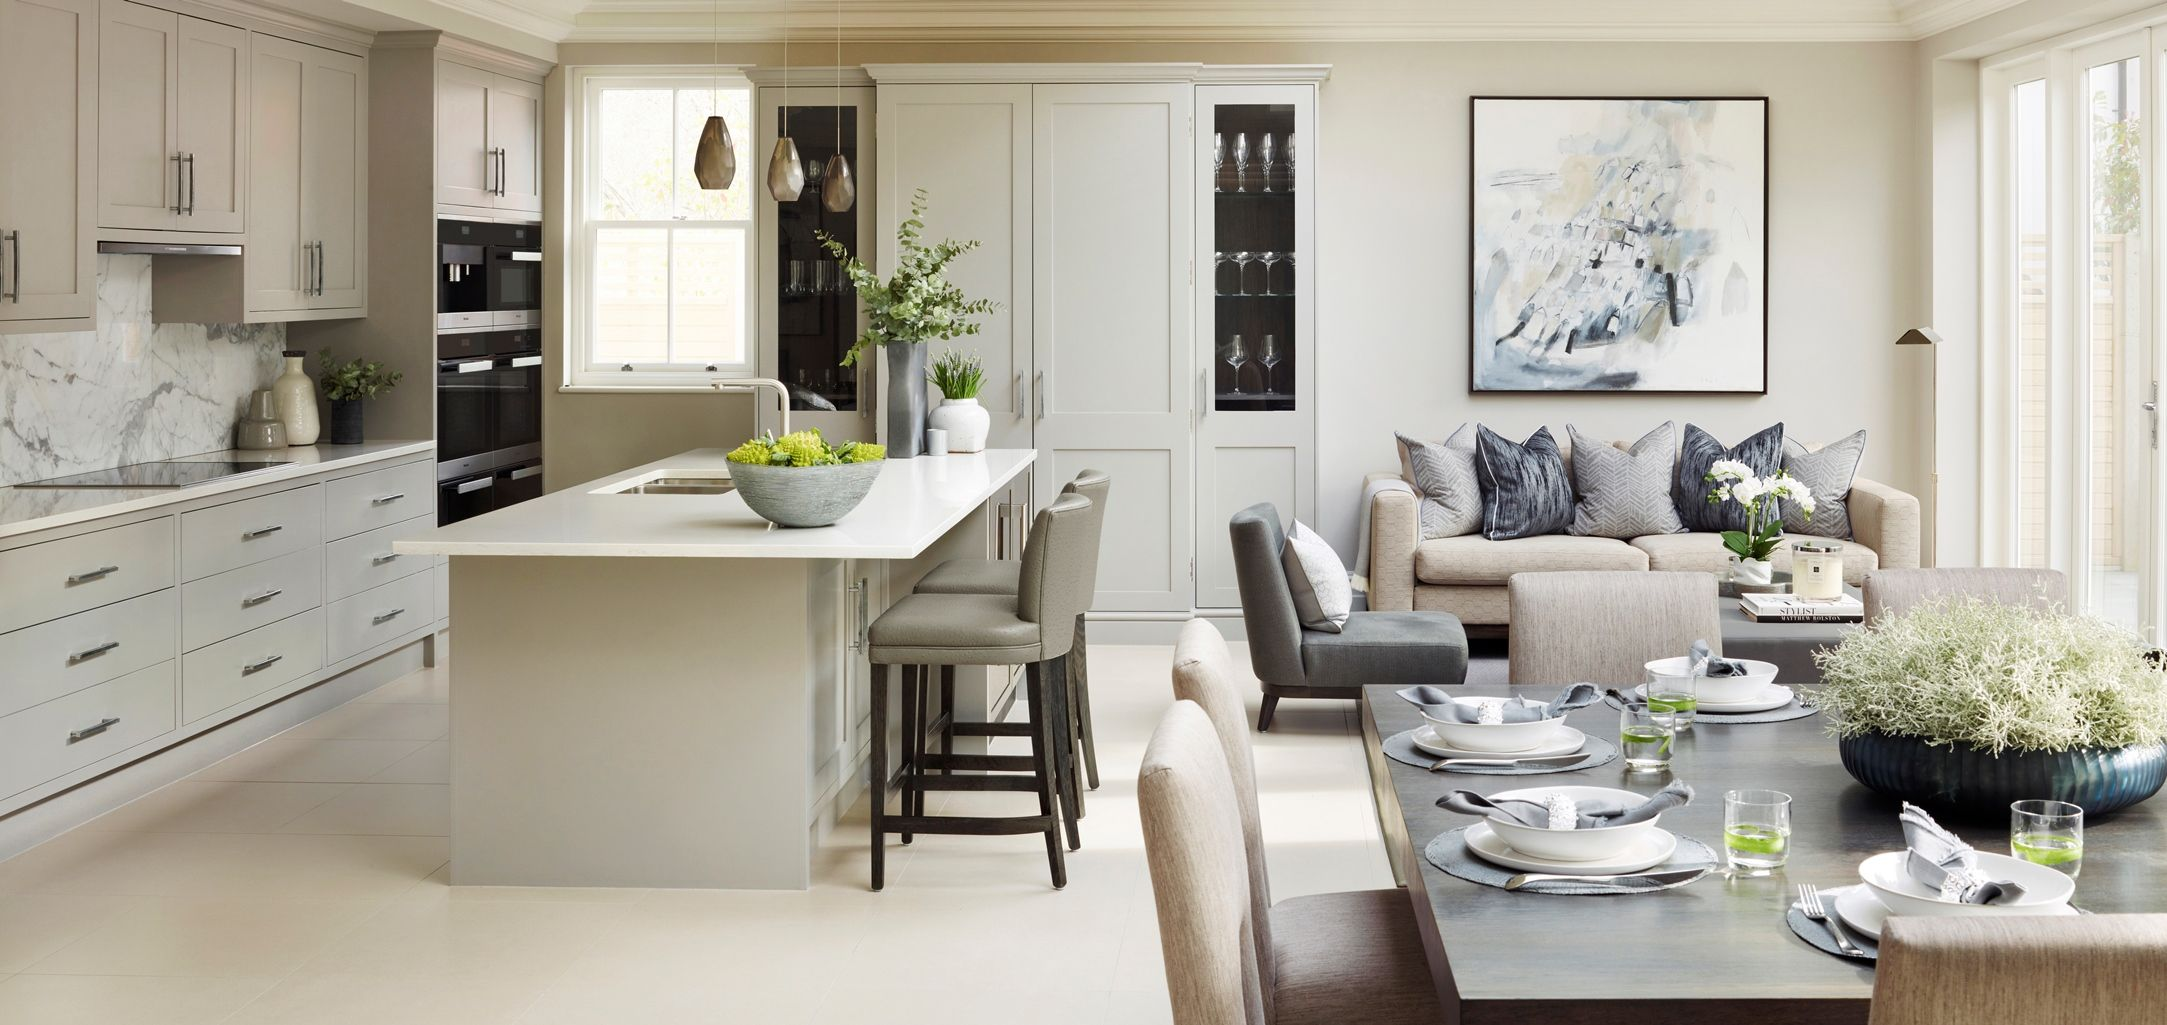 7 spring refresh tips from interior designers we love for Luxury residential interior designers london